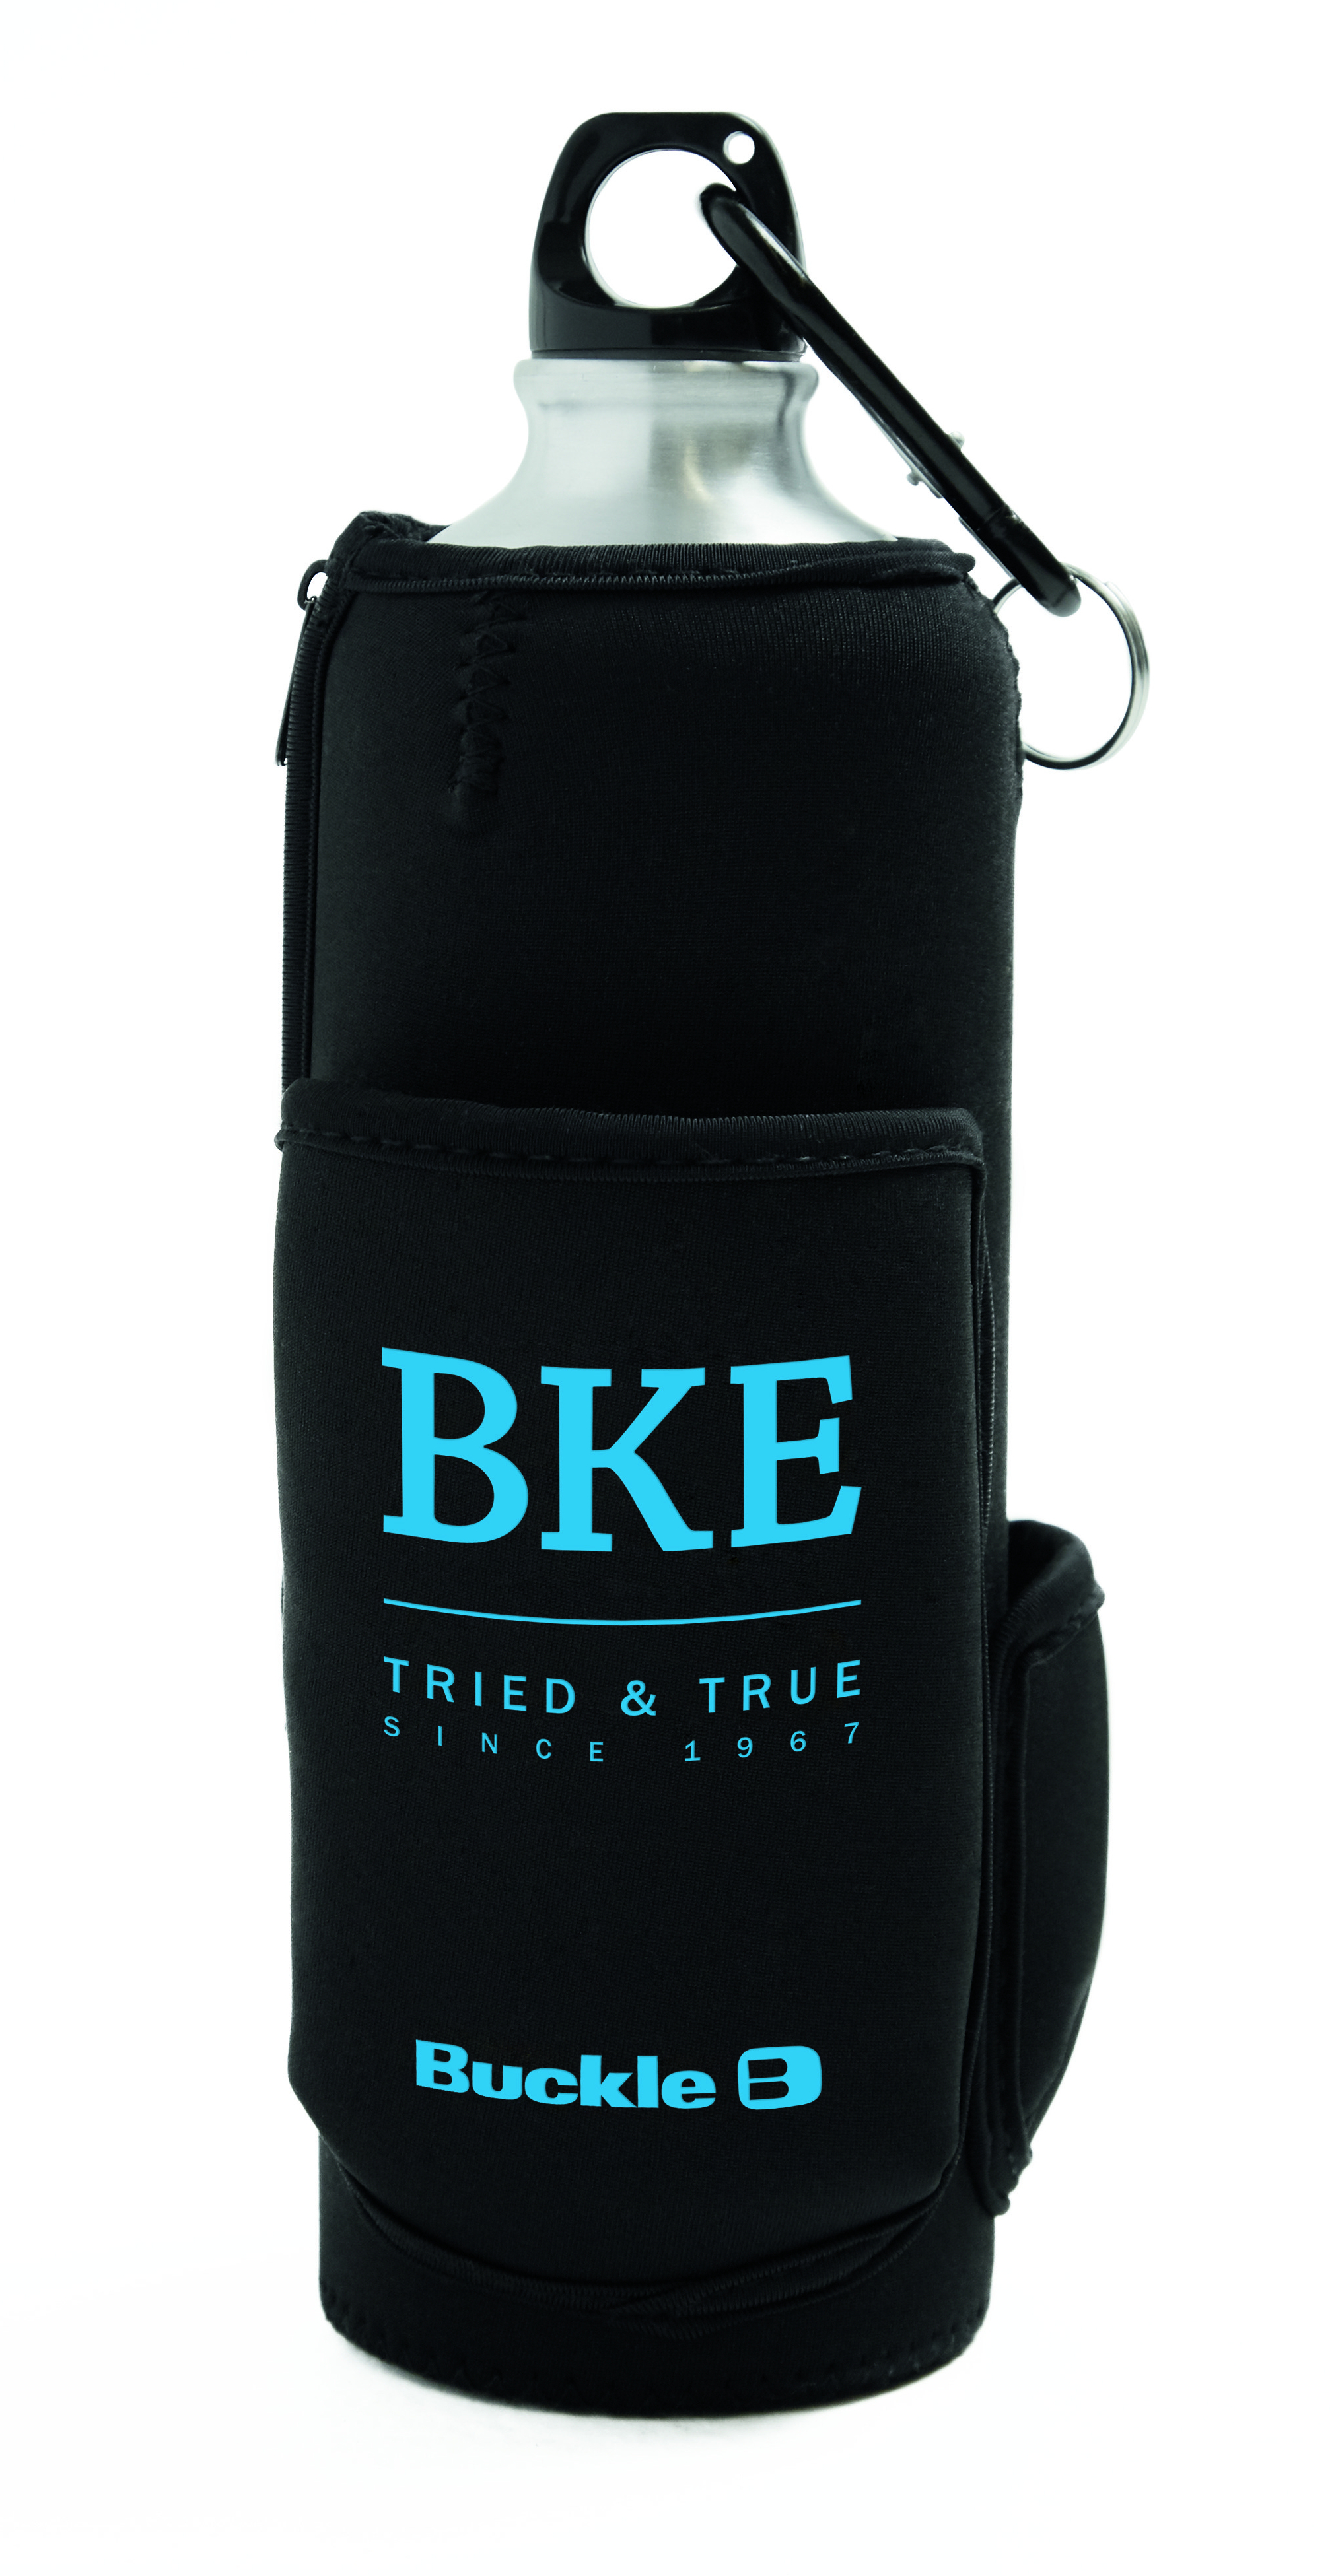 Buckle Brand Event - BKE Water Bottle